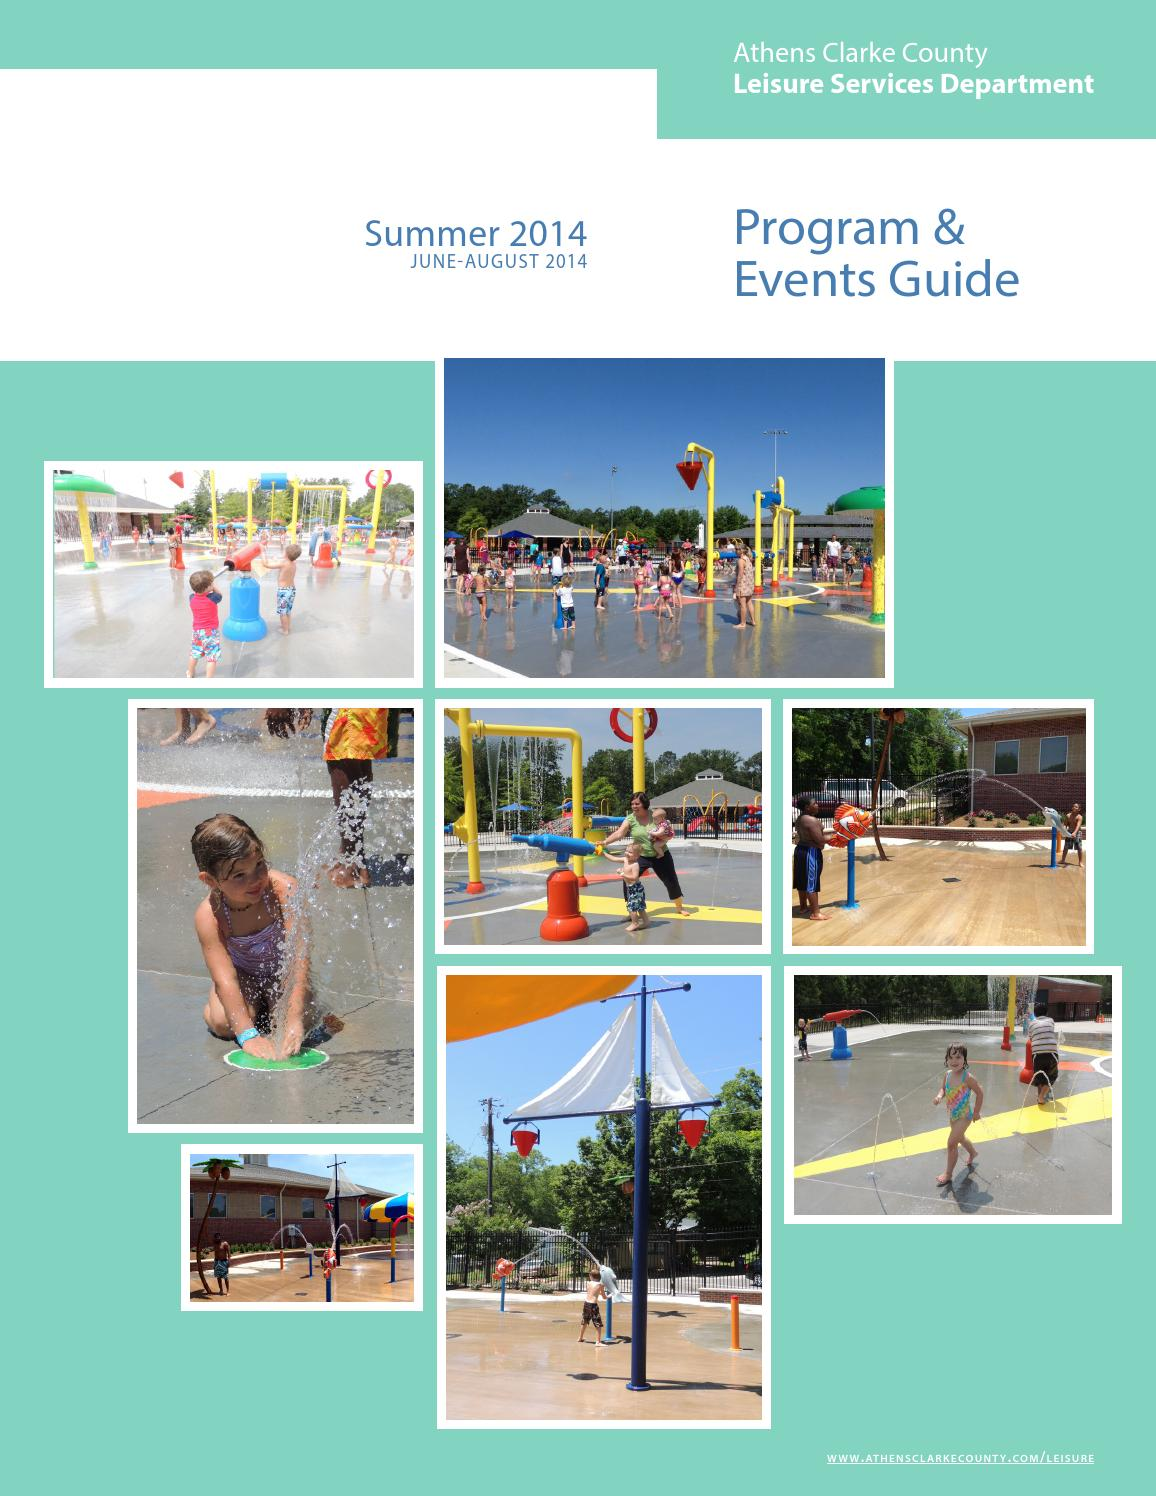 ACC Leisure Services Department Summer 2014 Program Guide final by ACC Leisure Services - Issuu